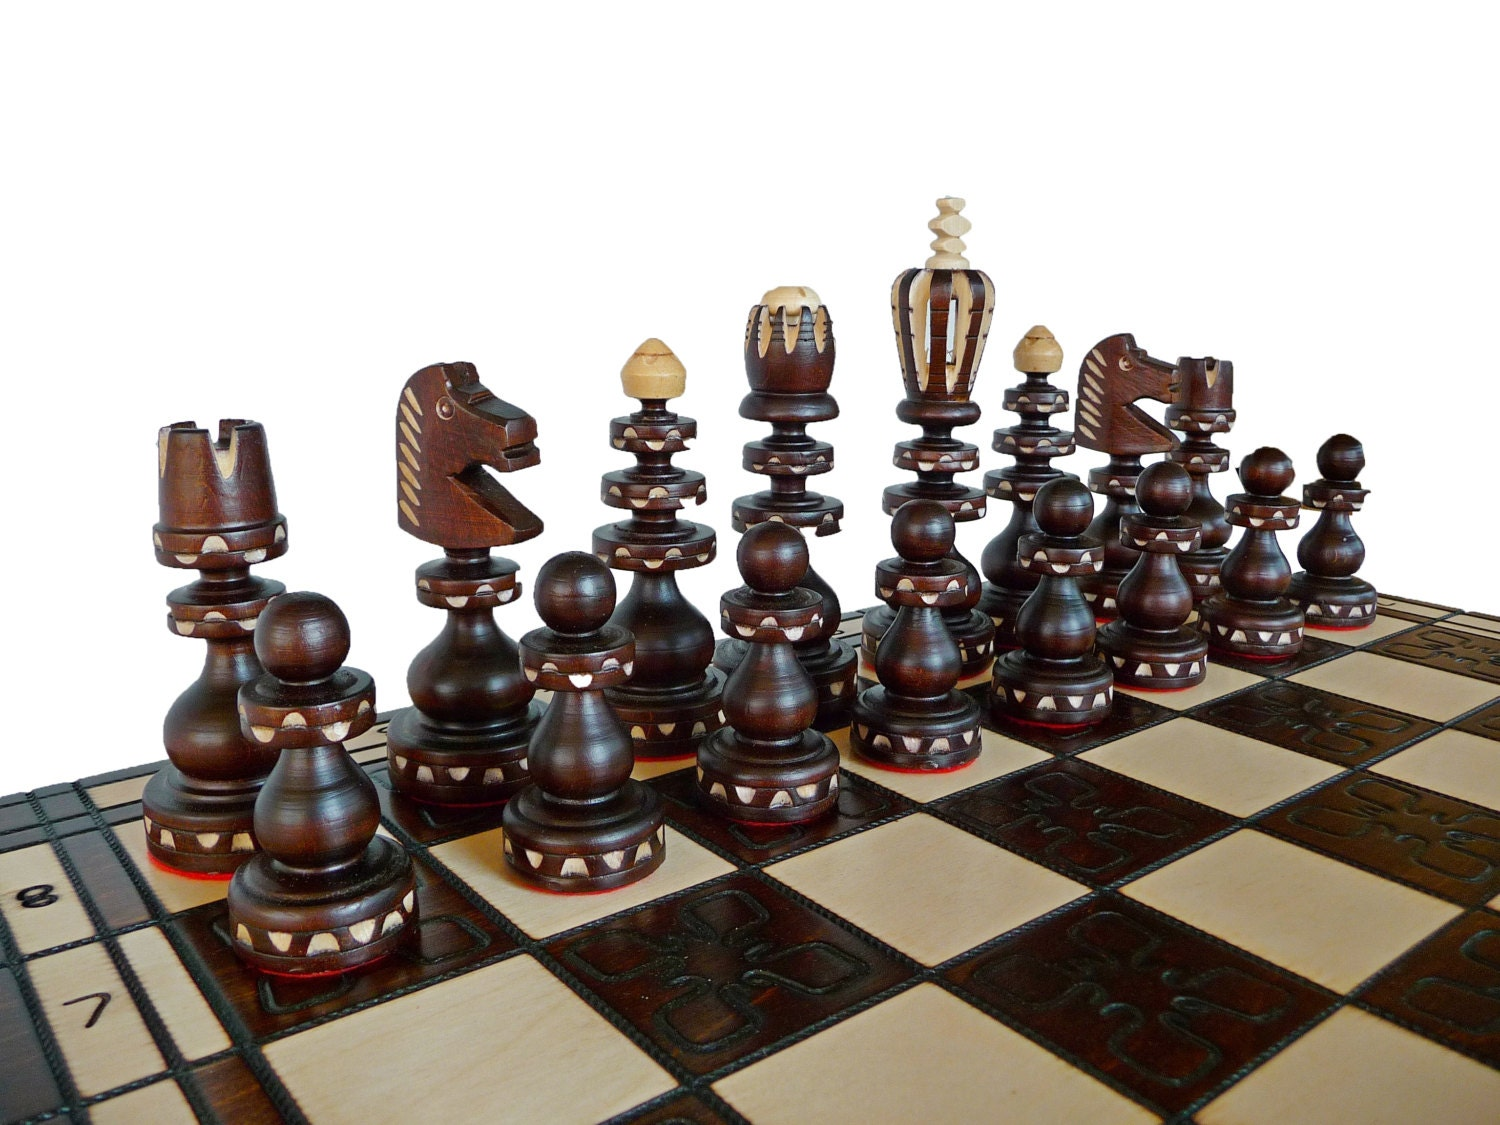 stylish wooden chess set hand crafted 55x55cm by stylishchess